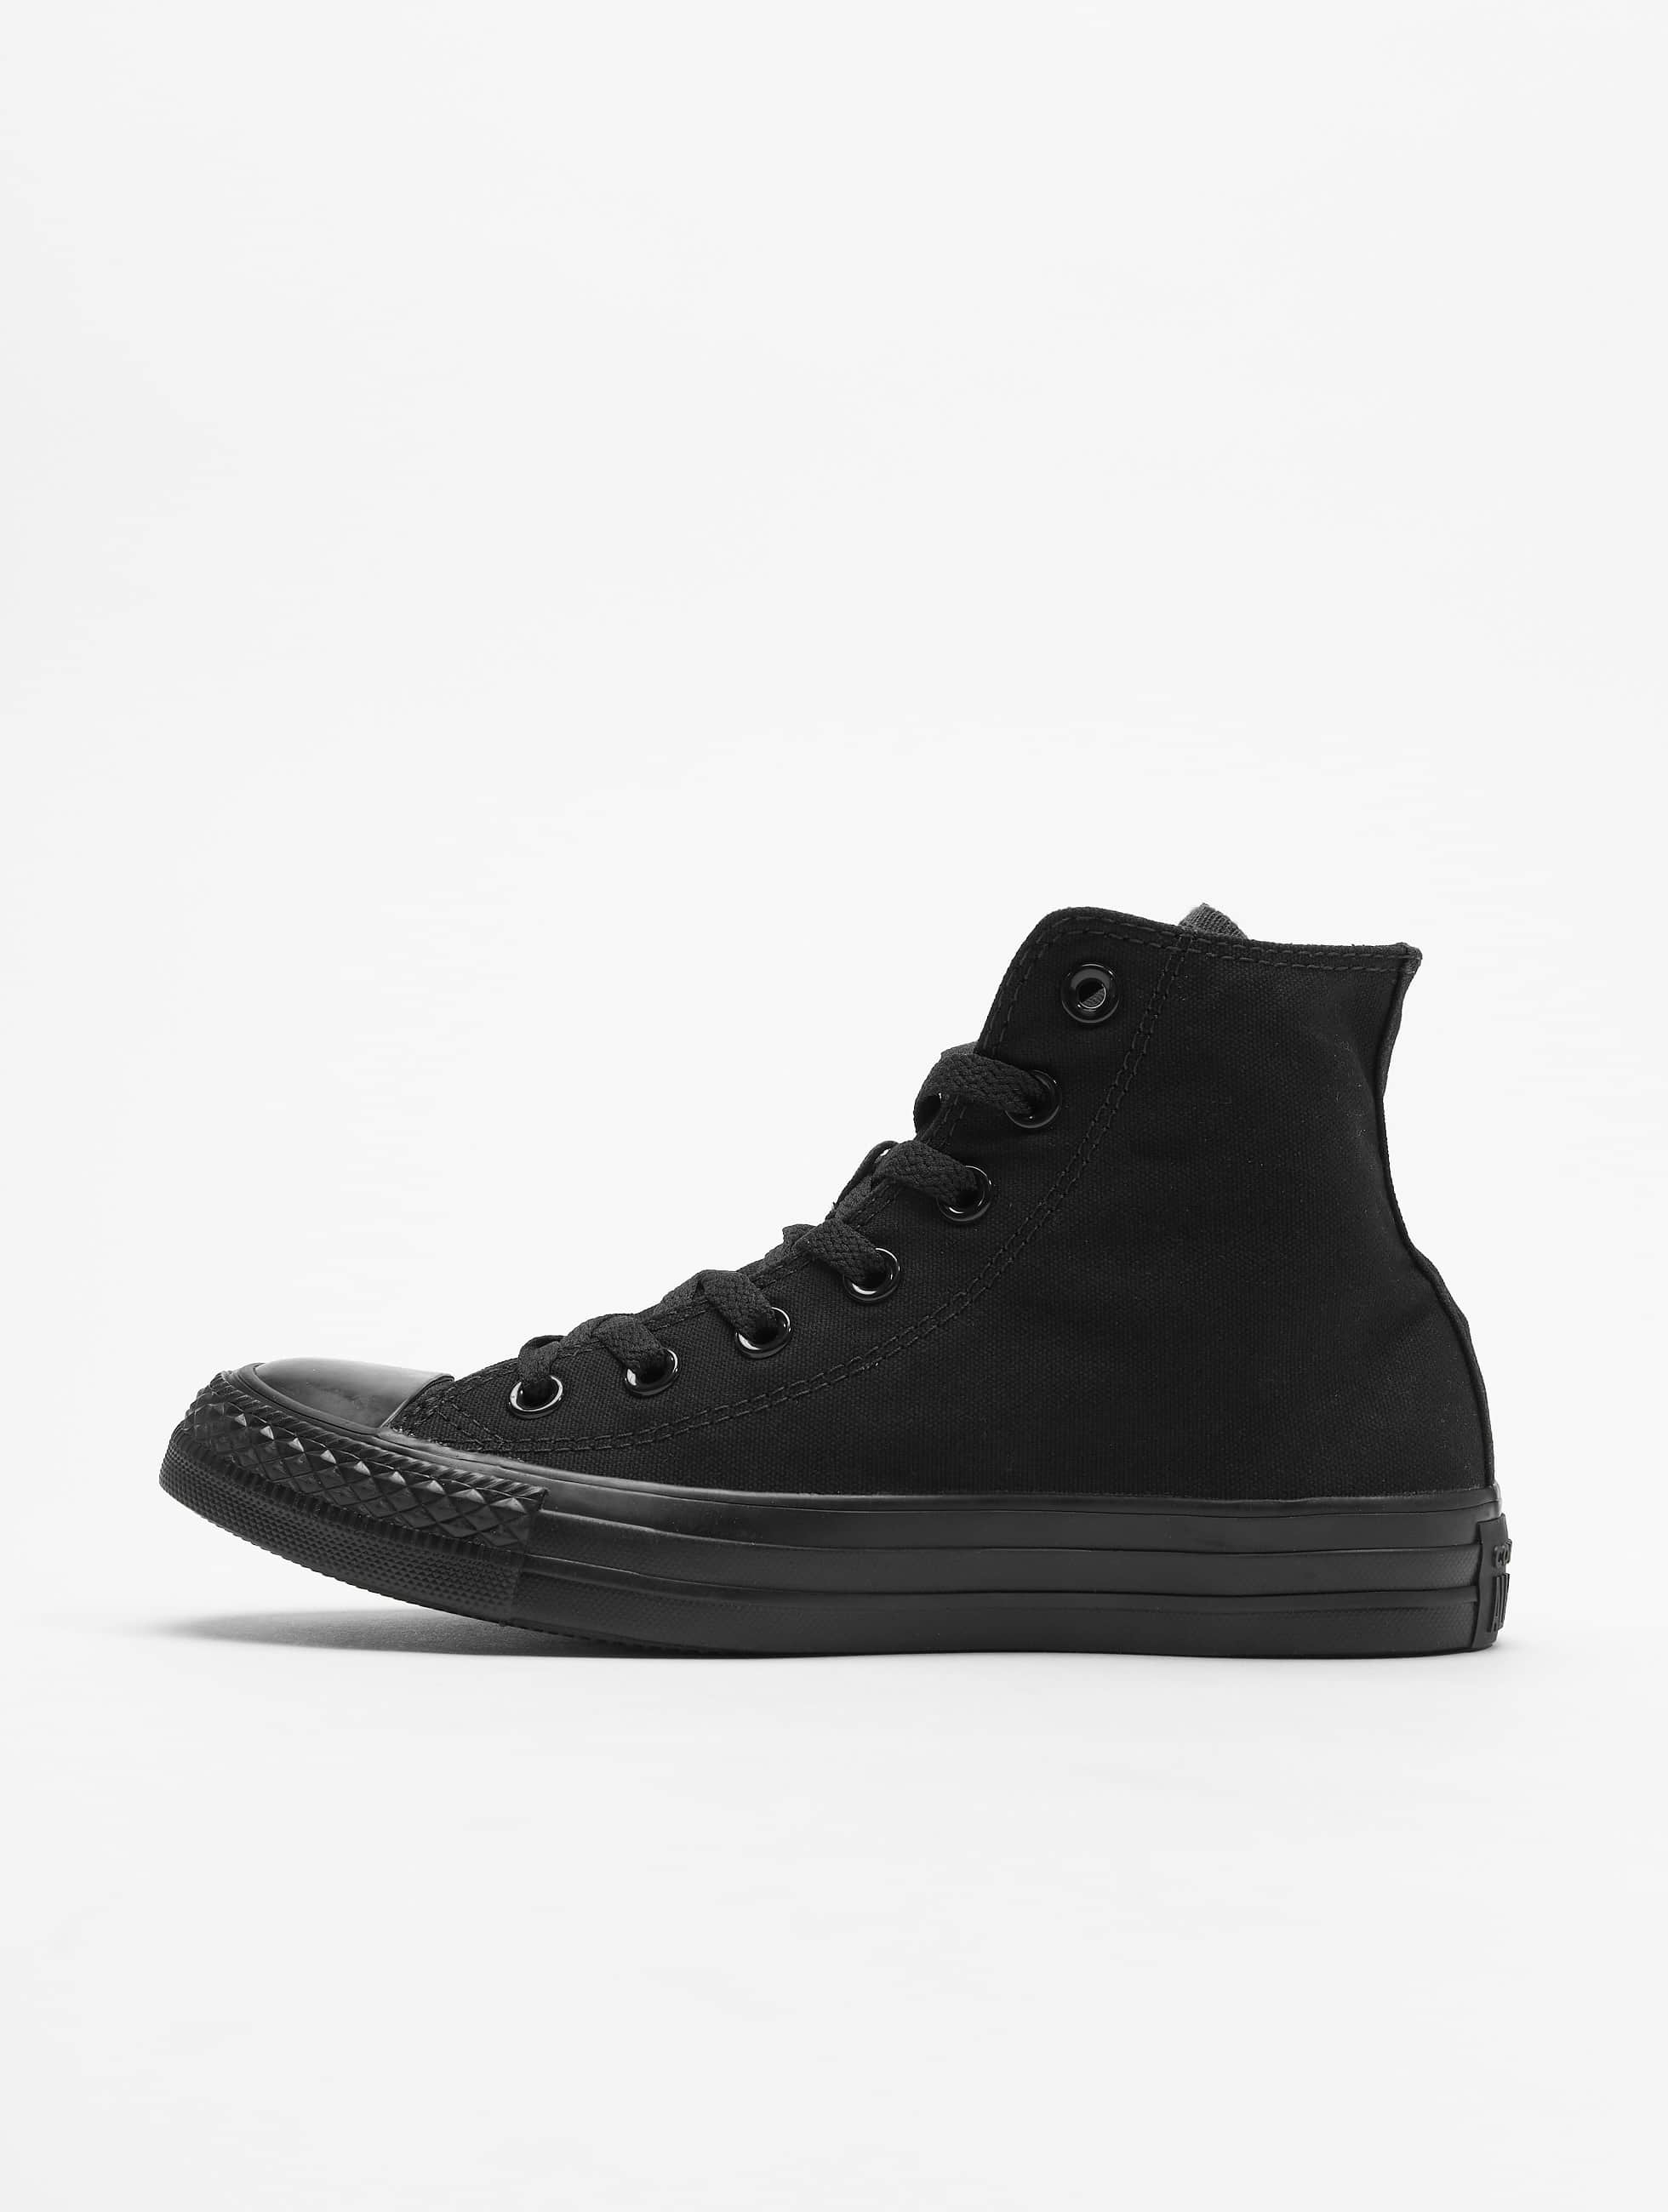 converse herren sneaker chuck taylor all star high in schwarz 156901. Black Bedroom Furniture Sets. Home Design Ideas